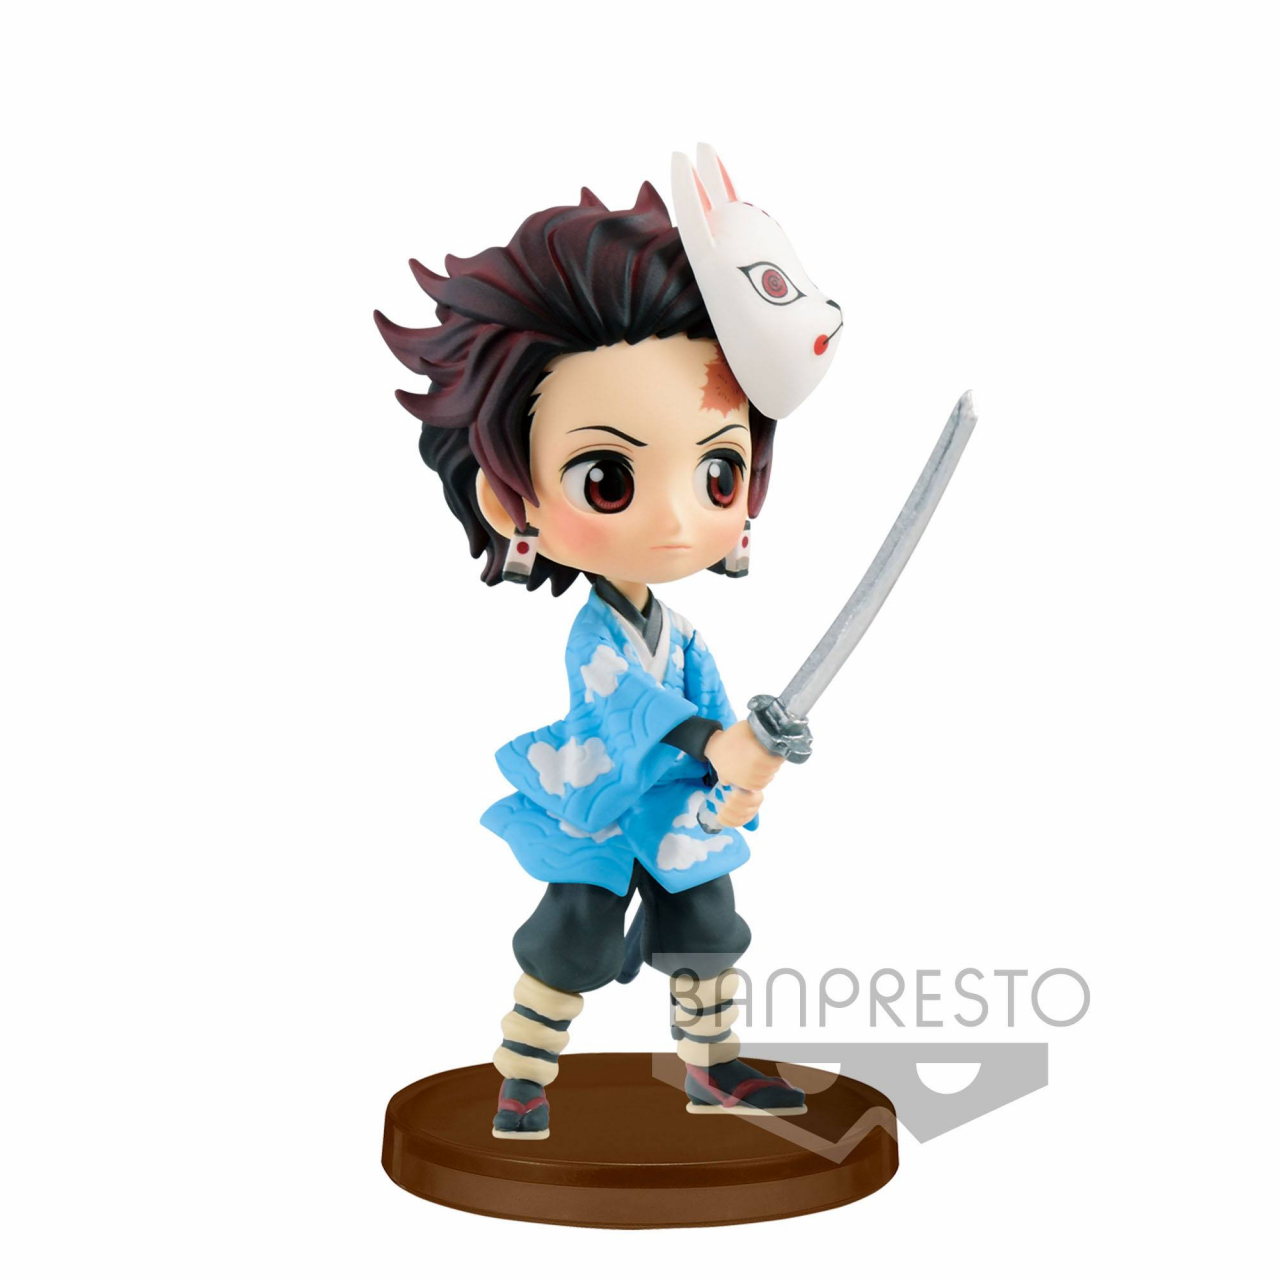 Demon Slayer Kimetsu no Yaiba Q Posket Petit Mini Figure Tanjiro Kamado 7 cm